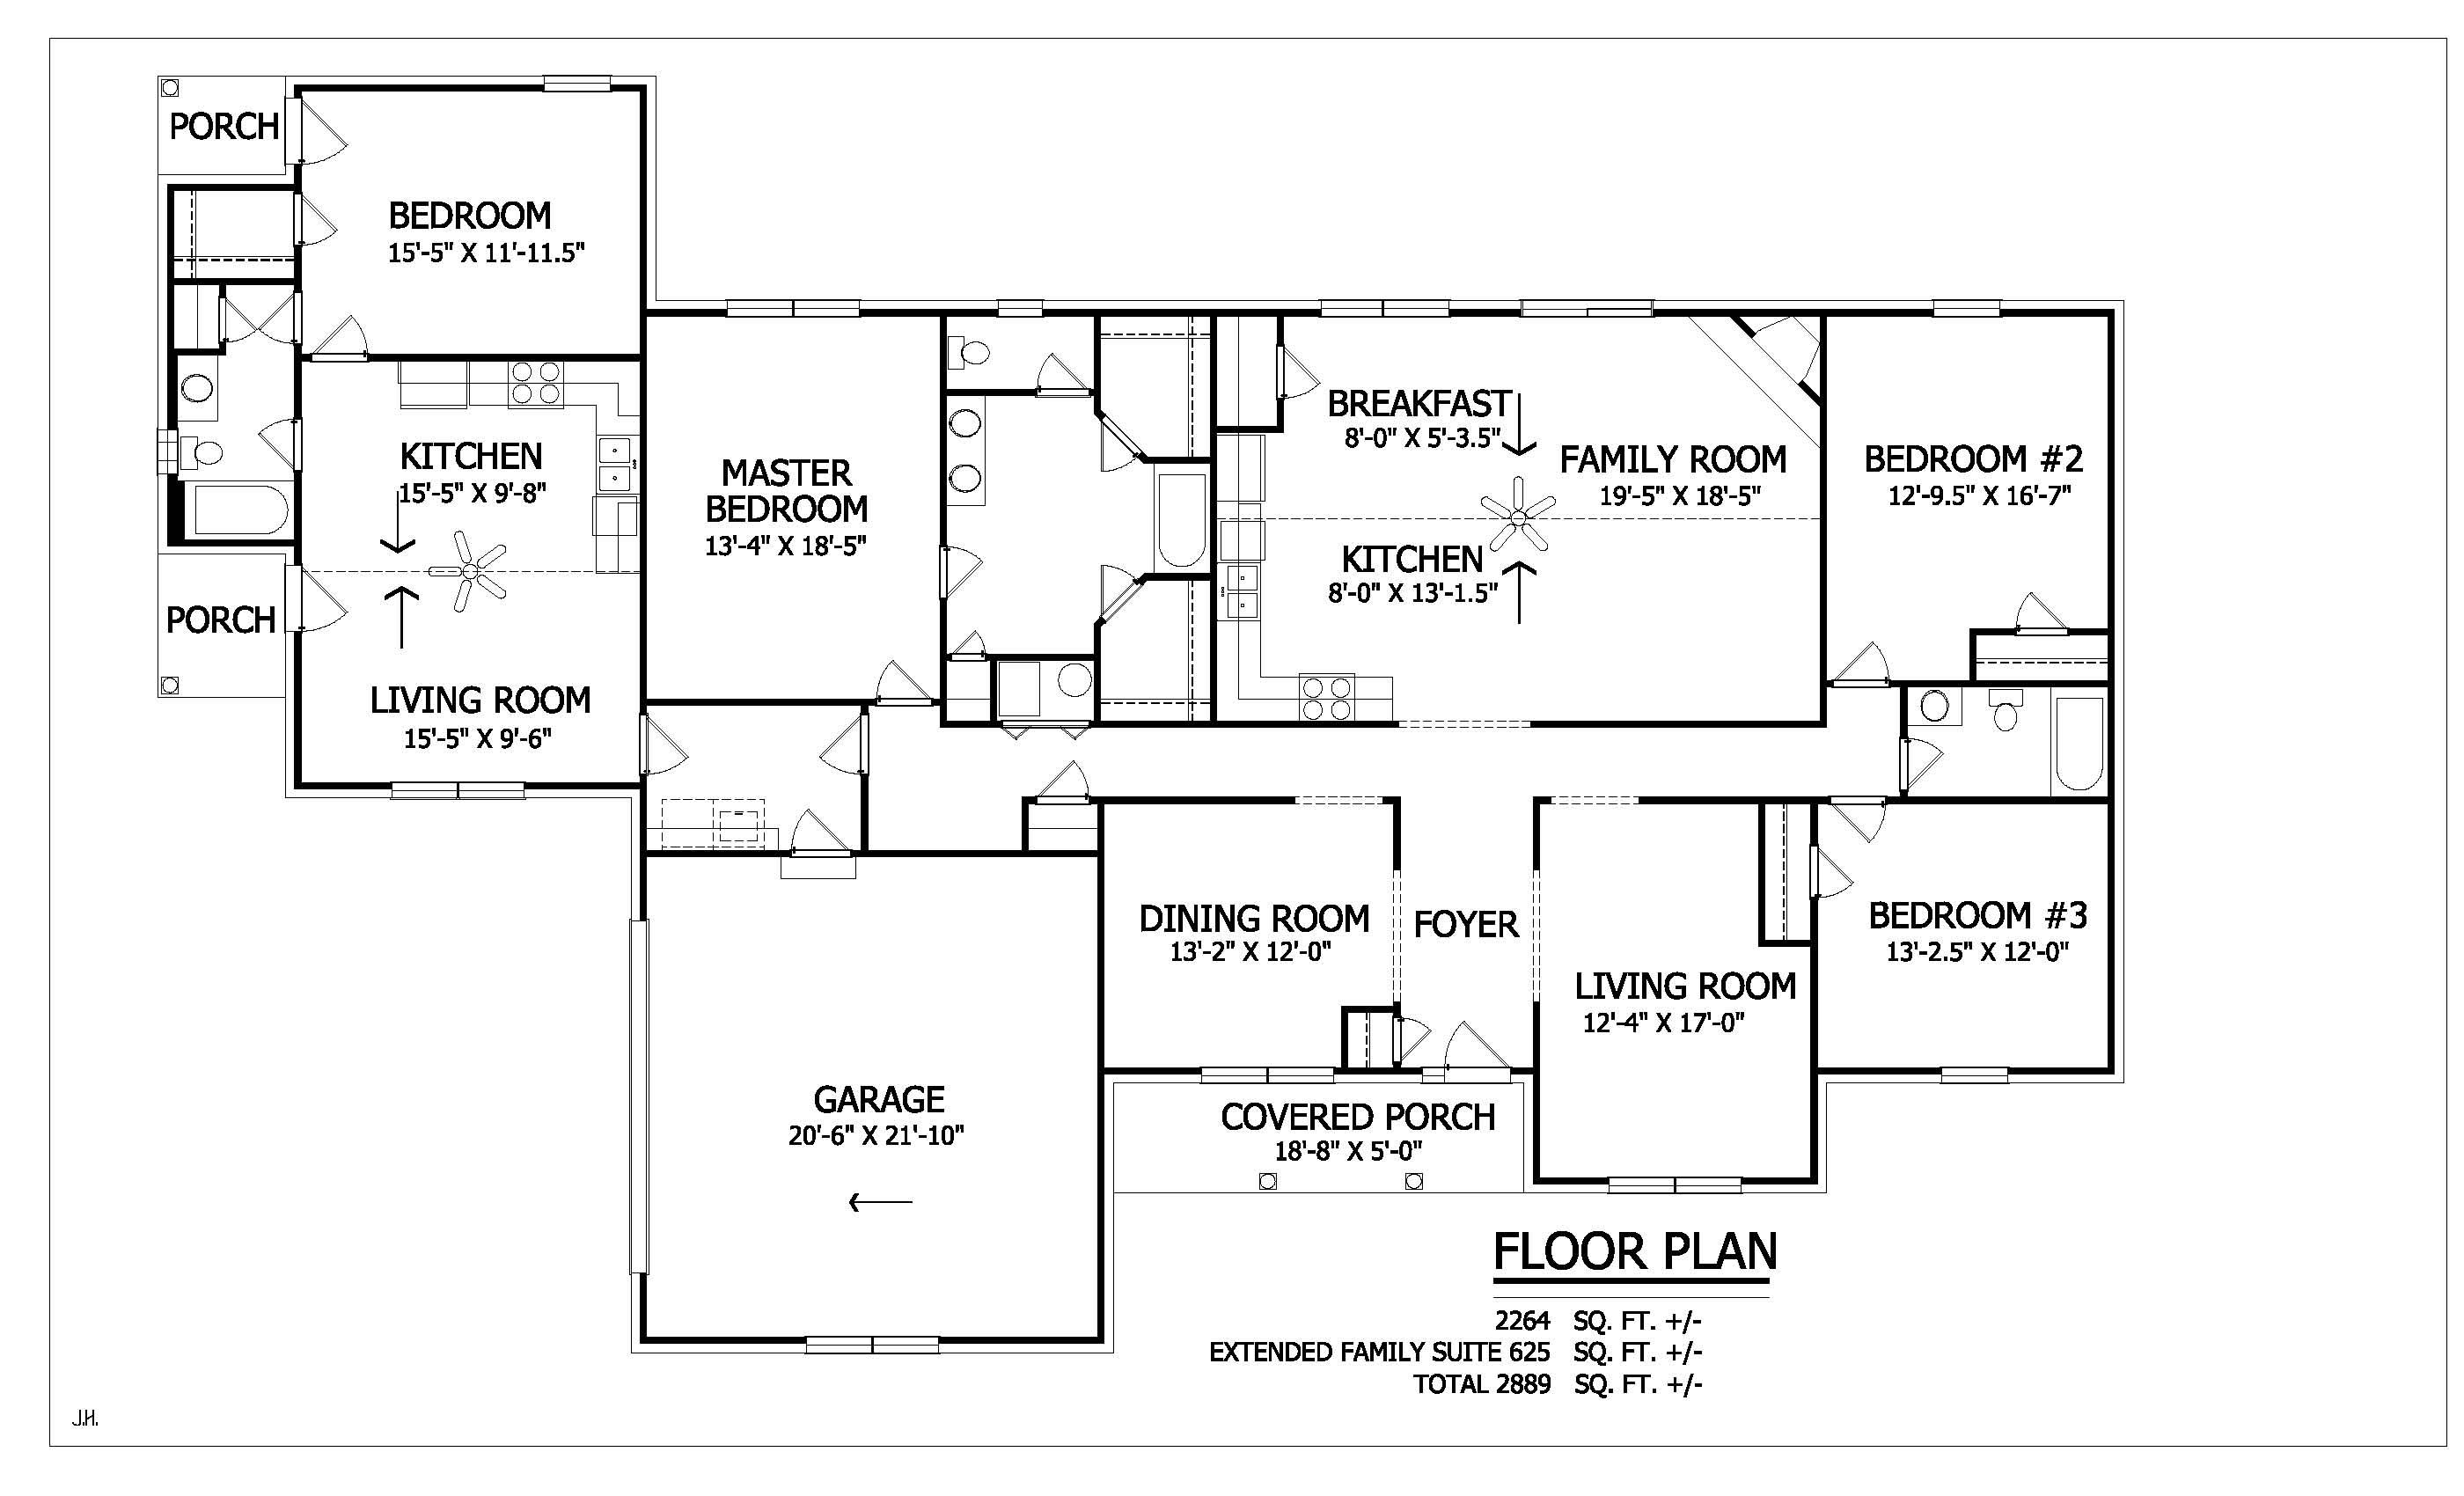 Extended Family Suites Taylor Homes House Plans How To Plan Floor Plans